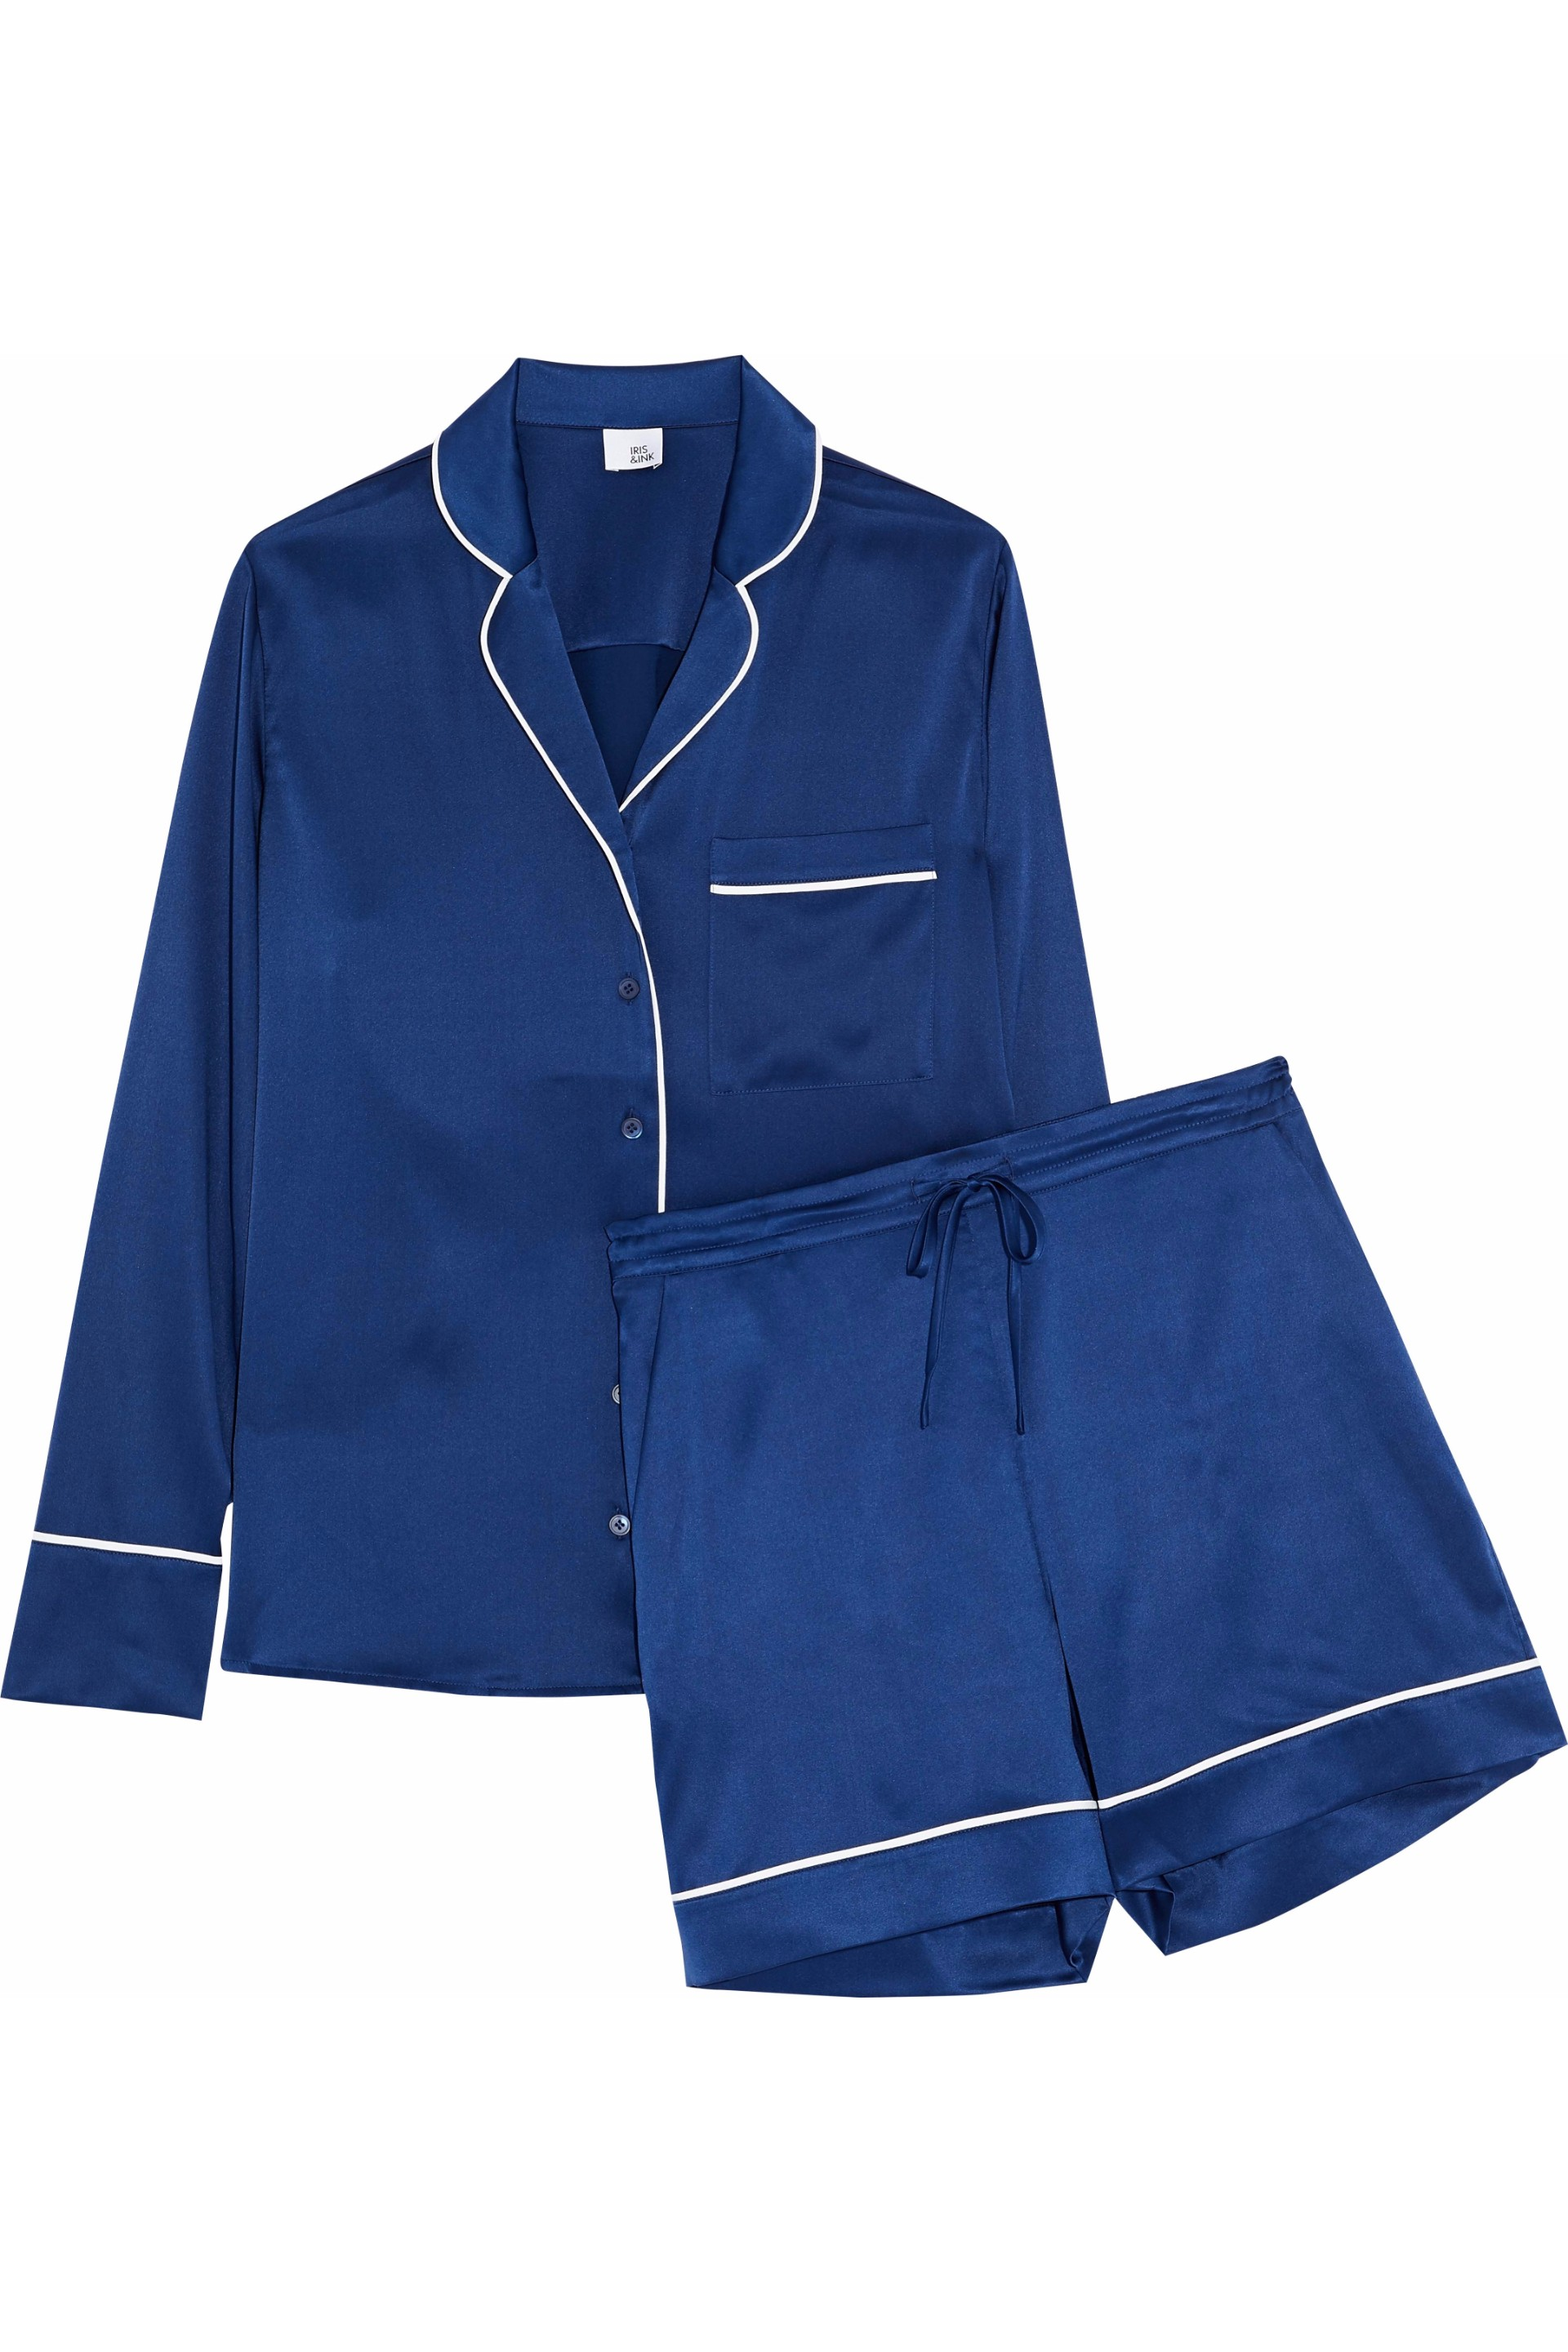 Your mum will want to live in these silky pyjamas